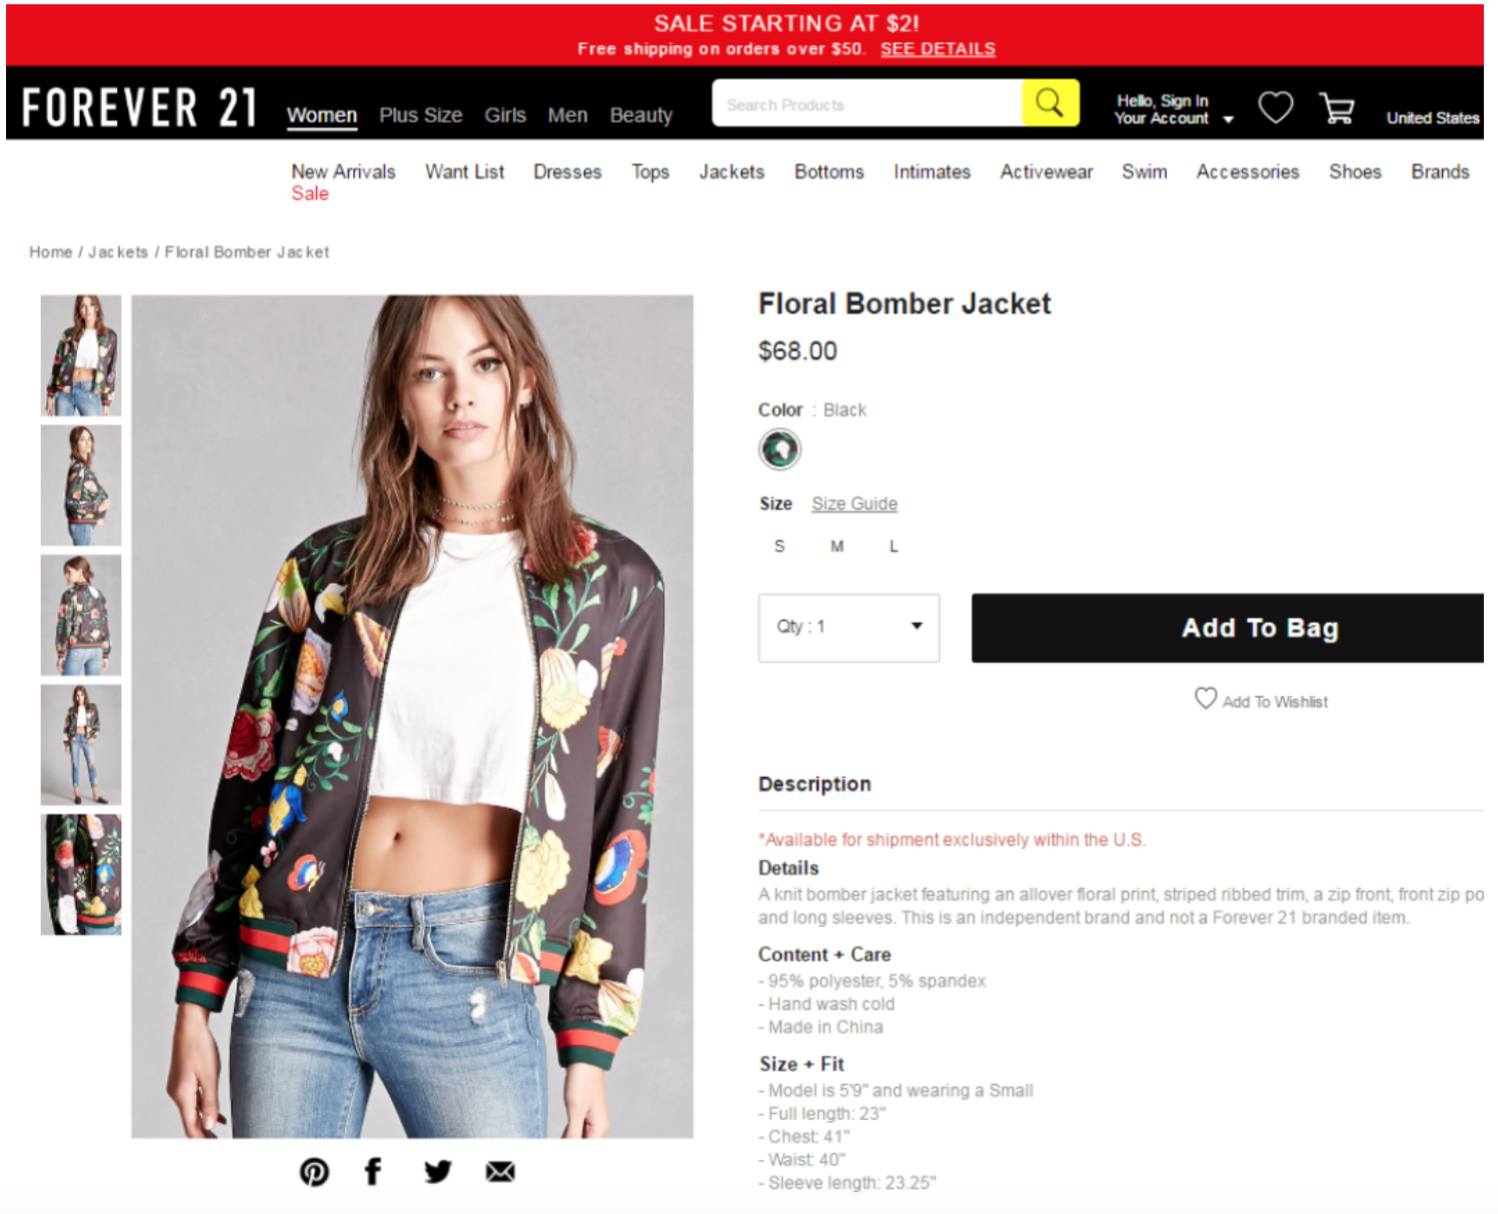 One of the allegedly infringing Forever 21 designs